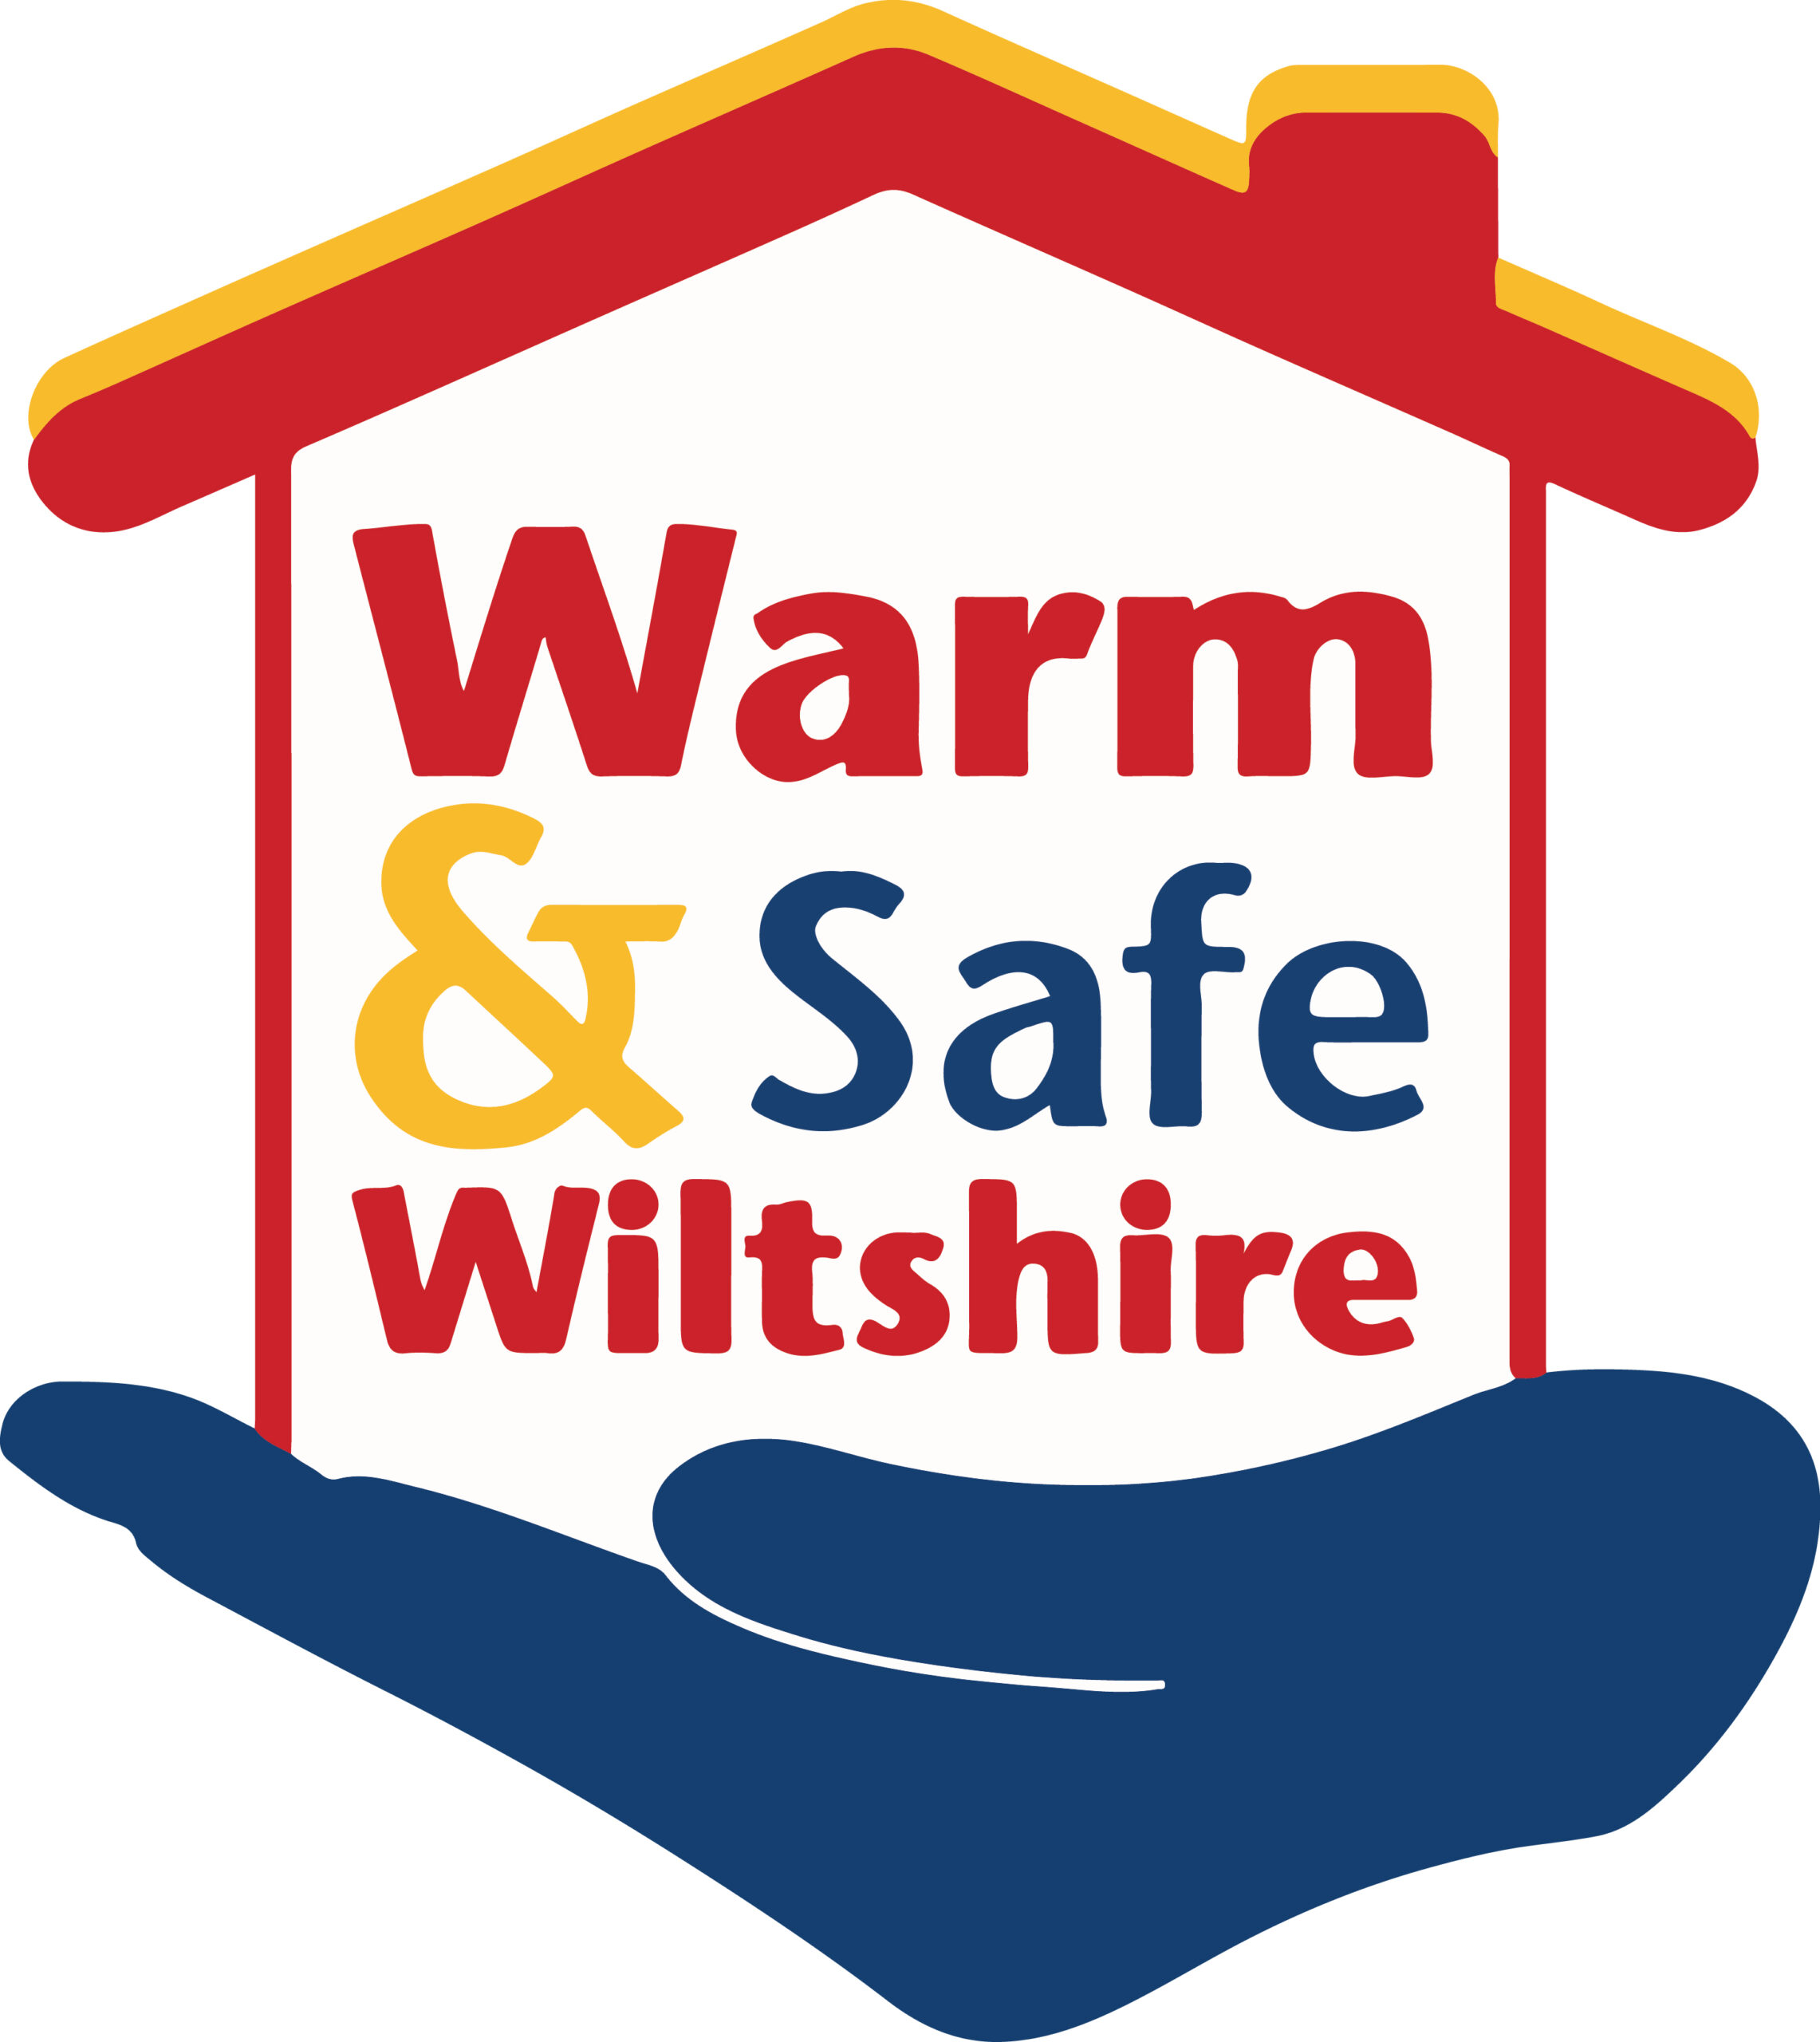 Keeping warm and safe in your home with Warm & Safe Wiltshire